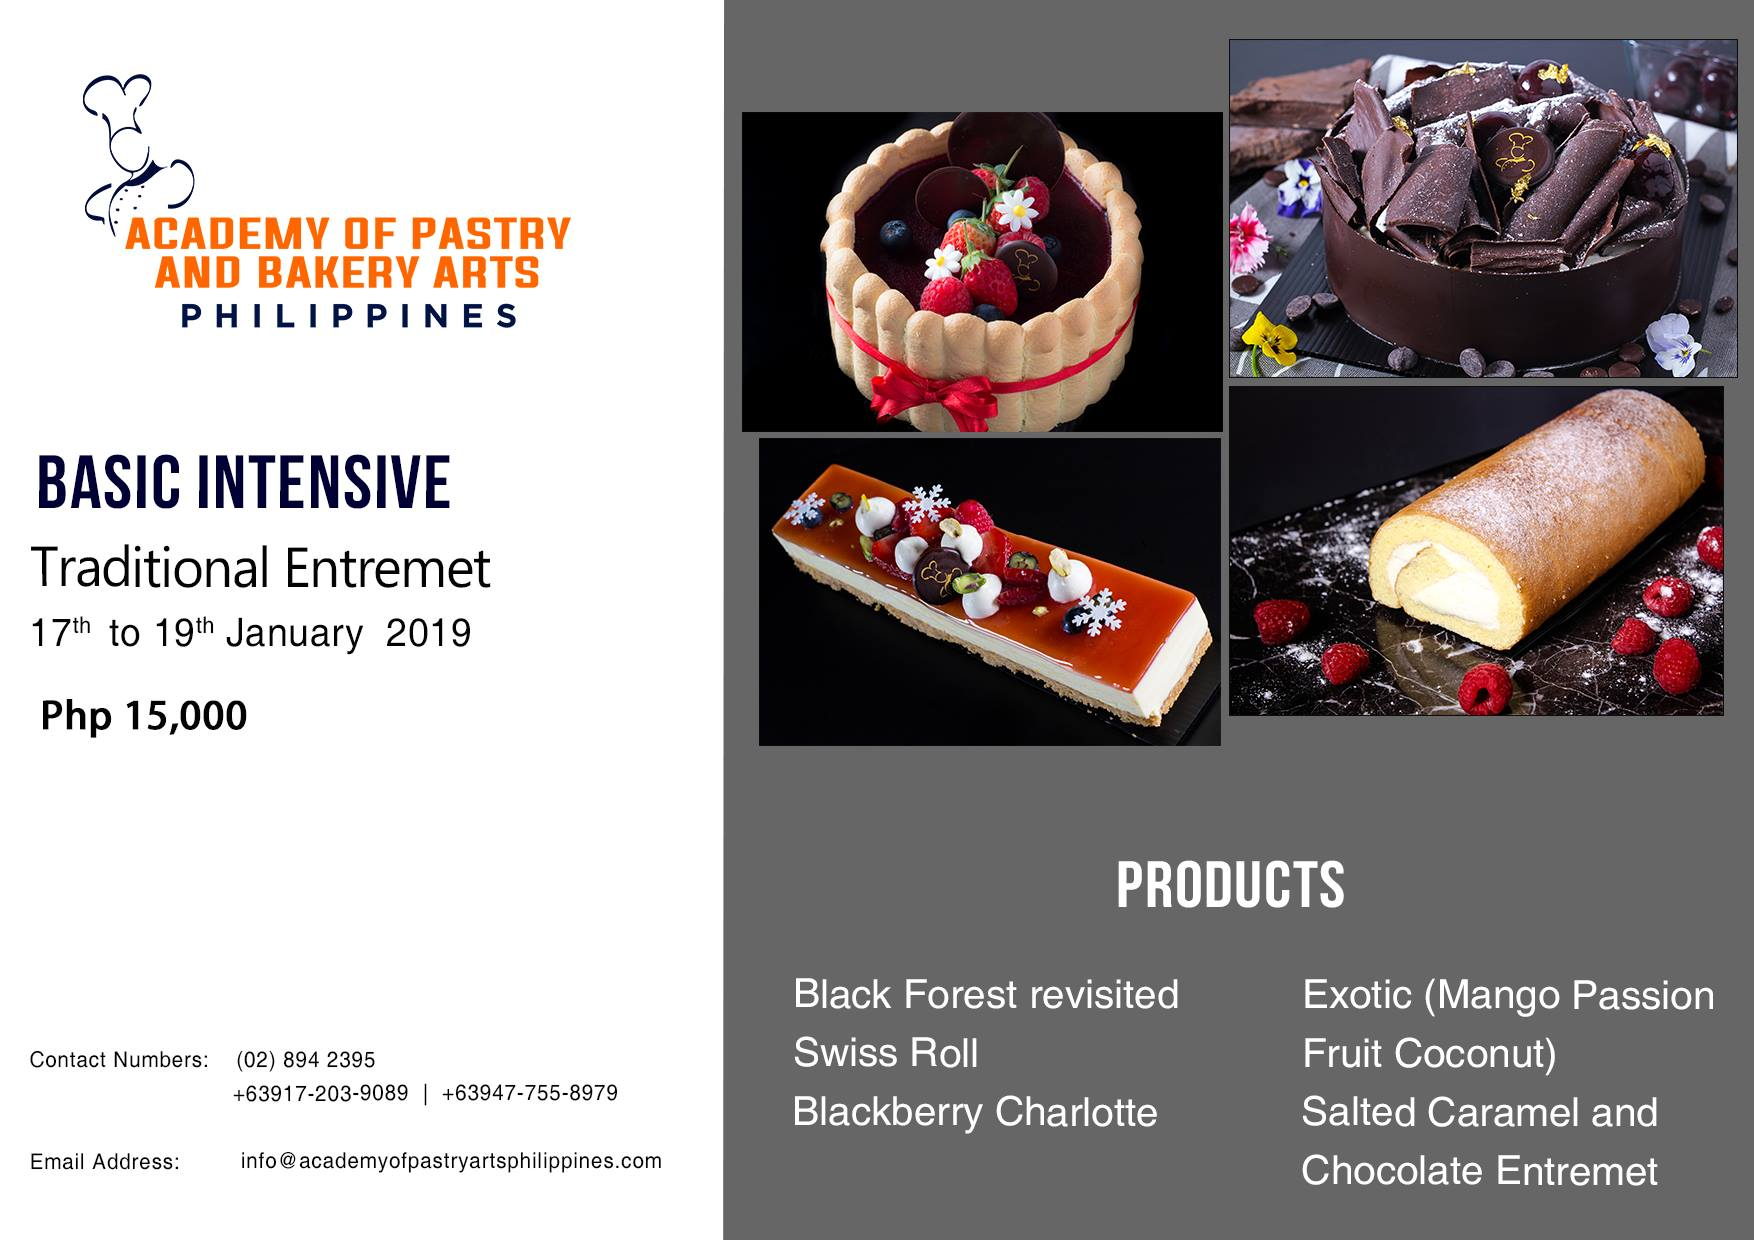 TRADITIONAL ENTREMET